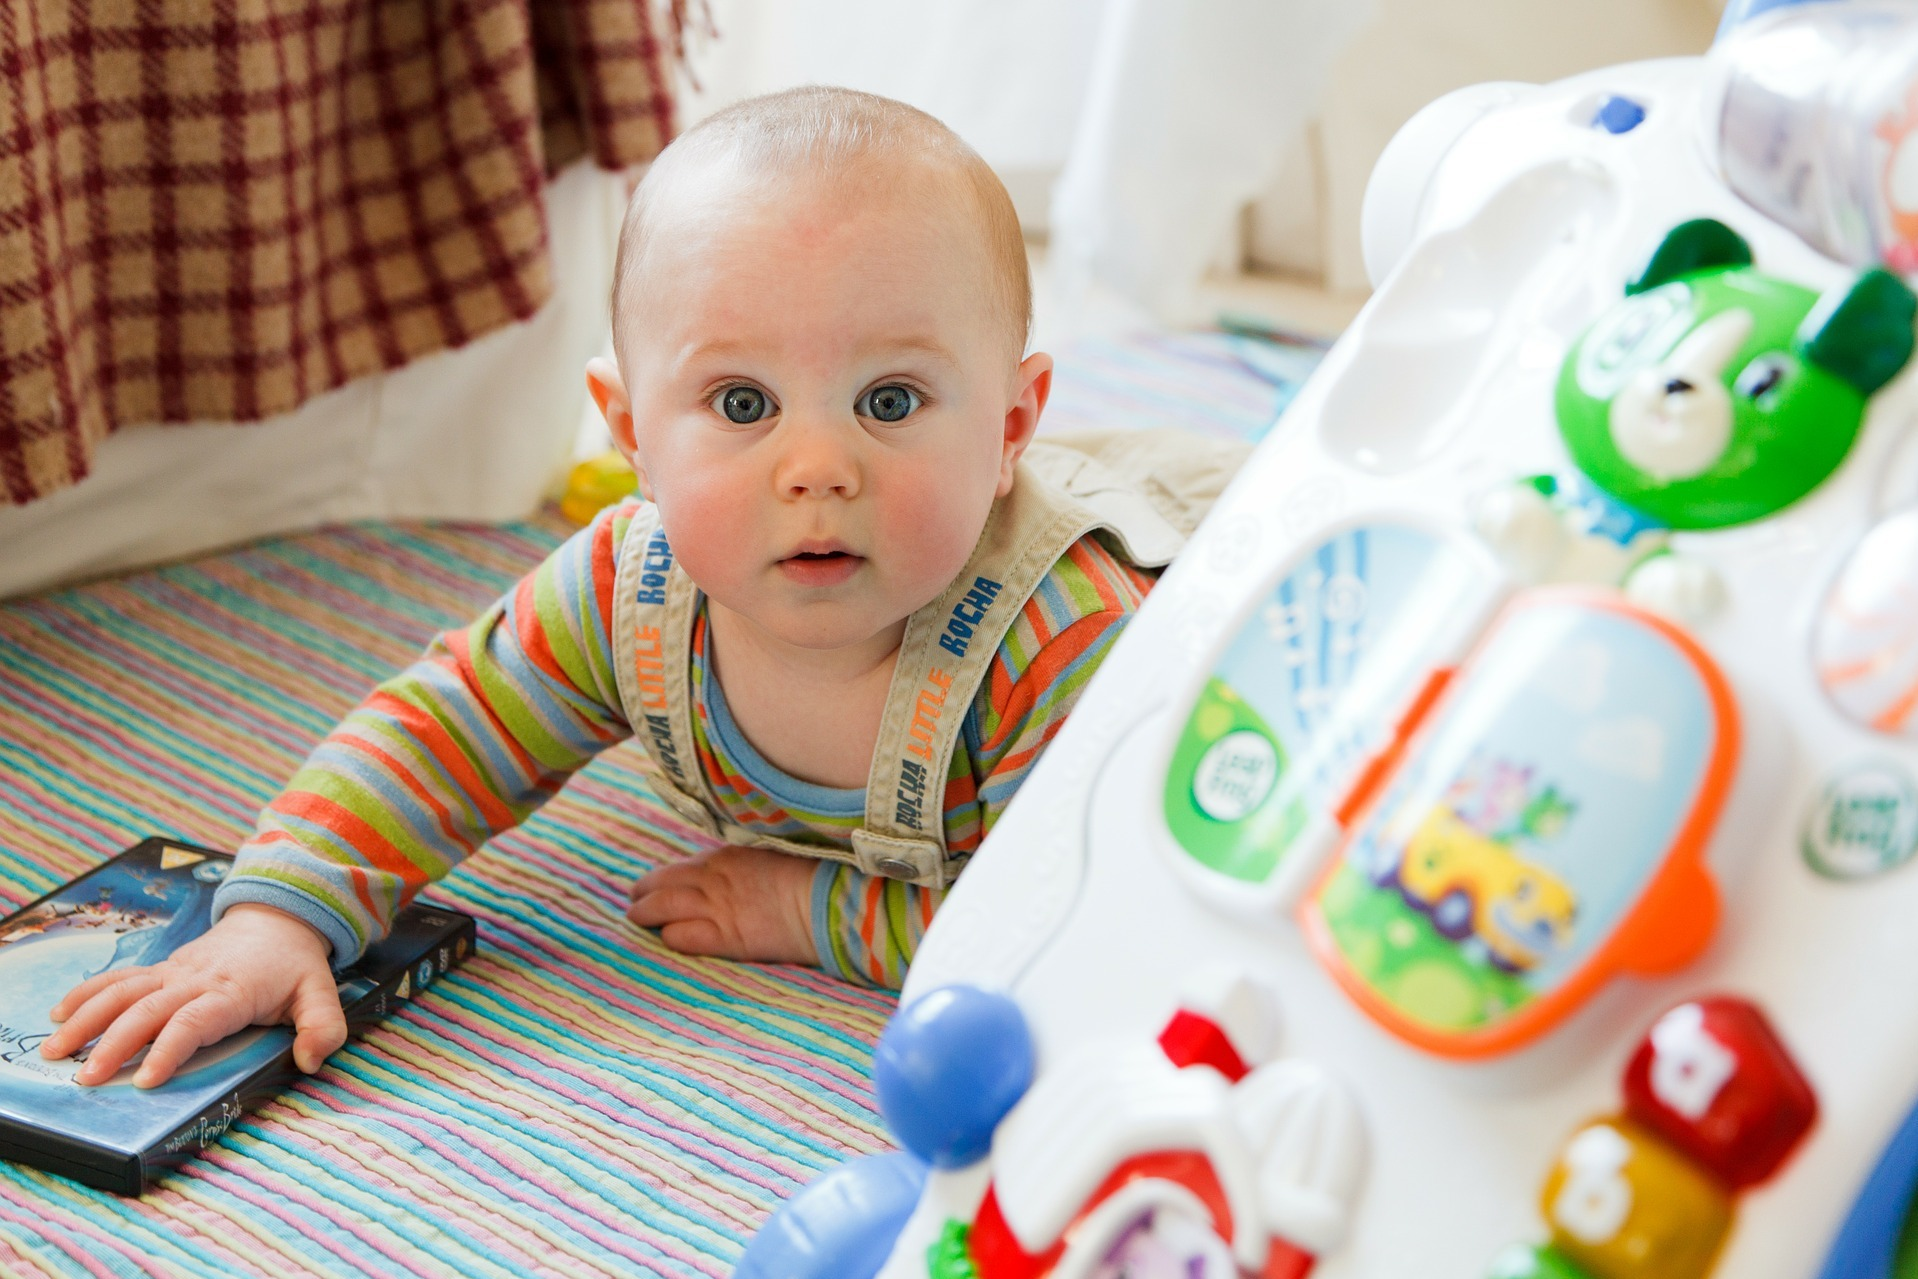 Have you given any thought to baby proofing now that your new baby is home?